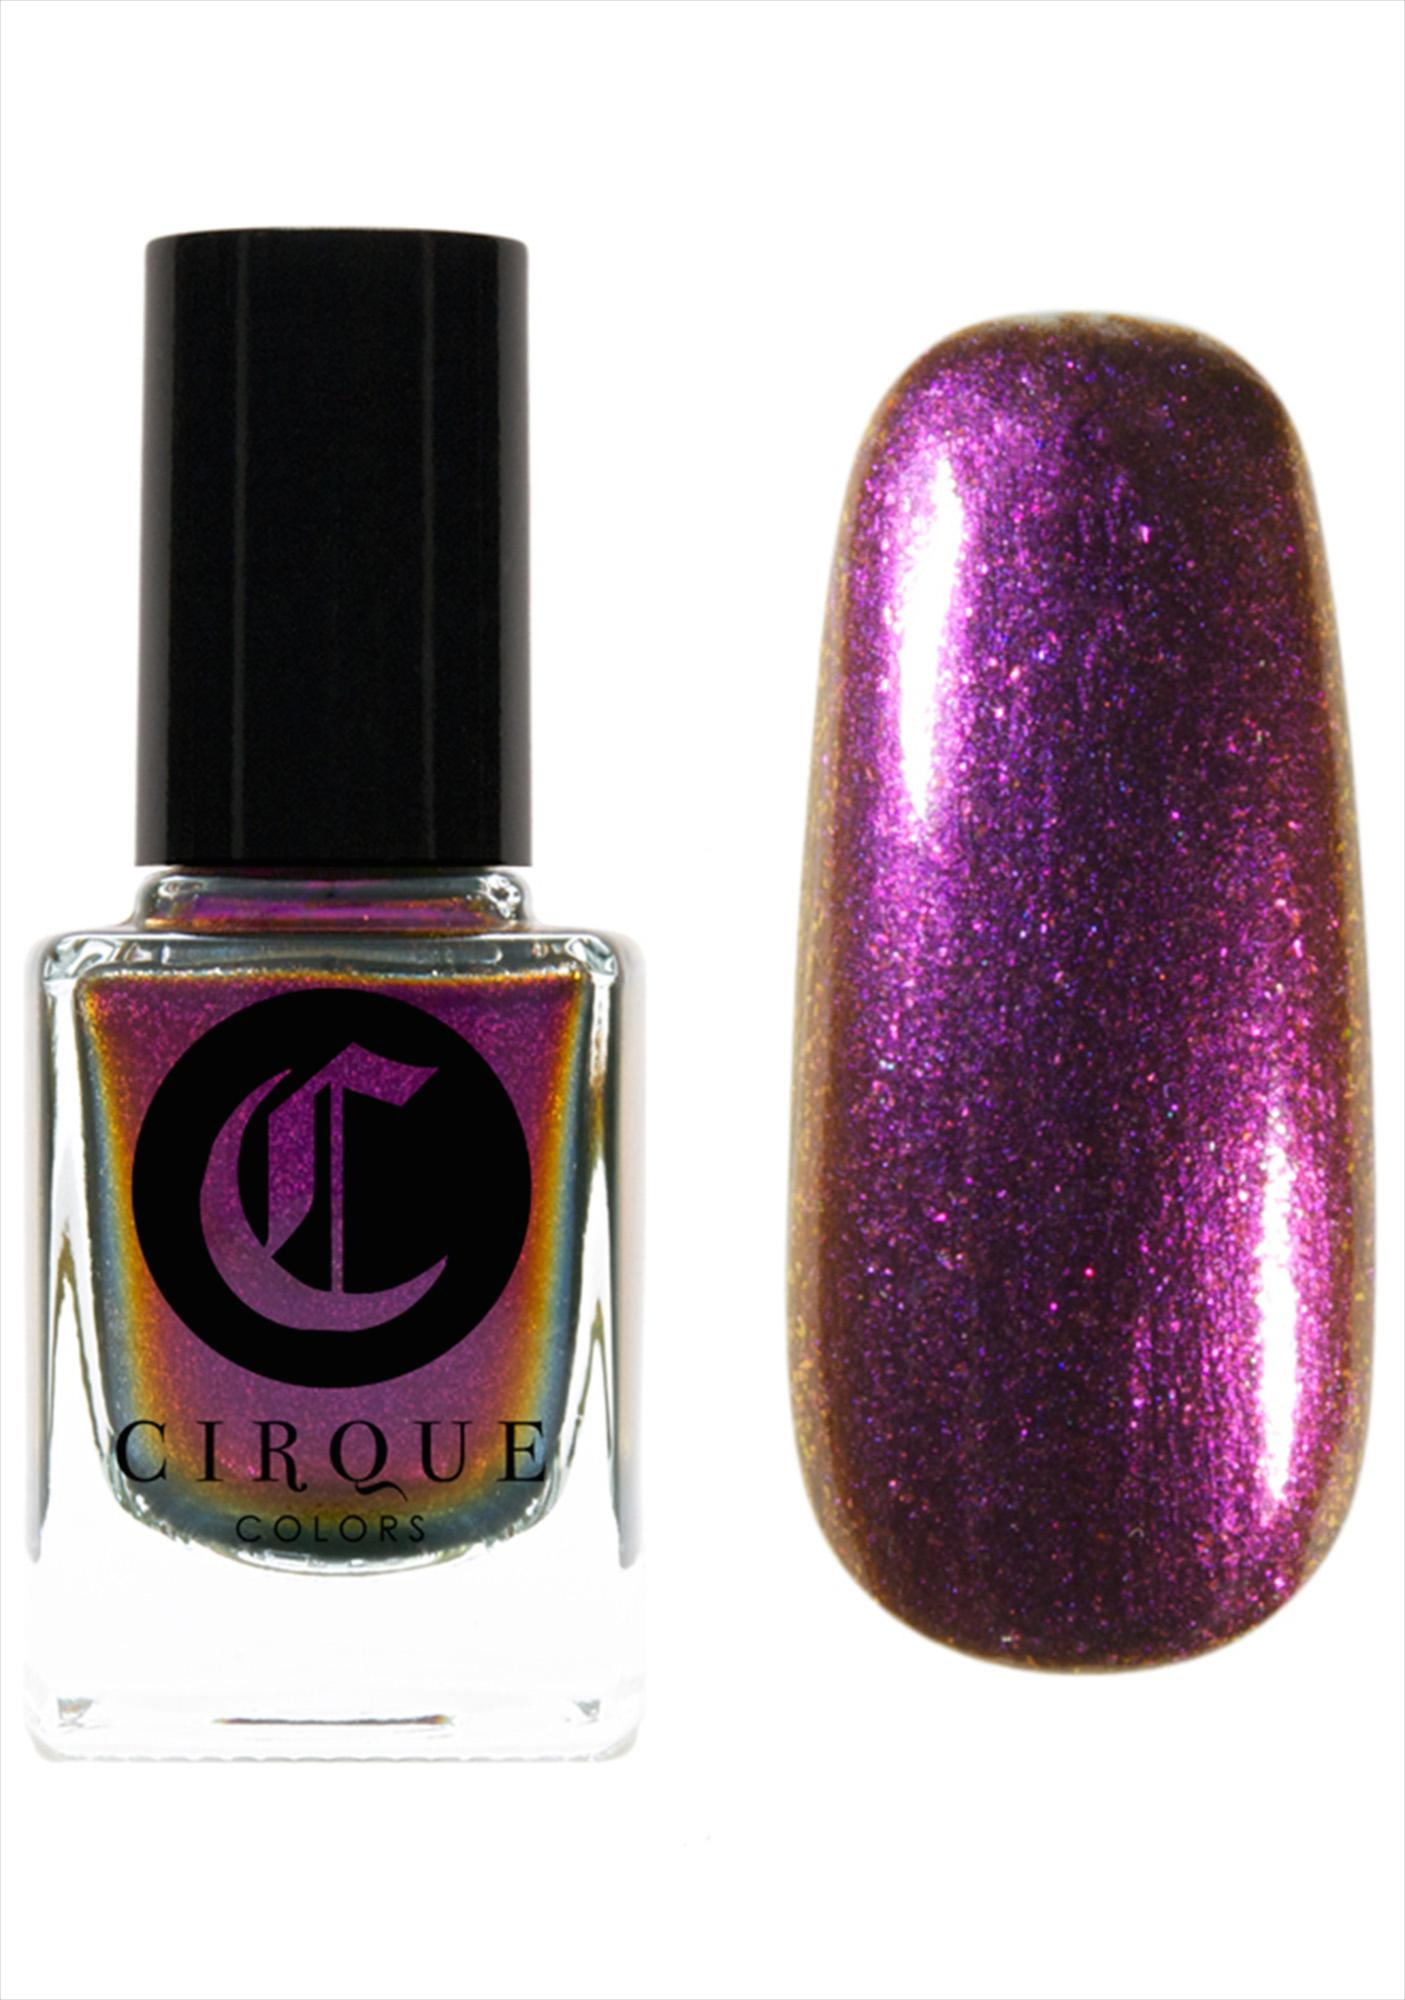 Cirque Colors Cabaret Voltaire Nail Polish